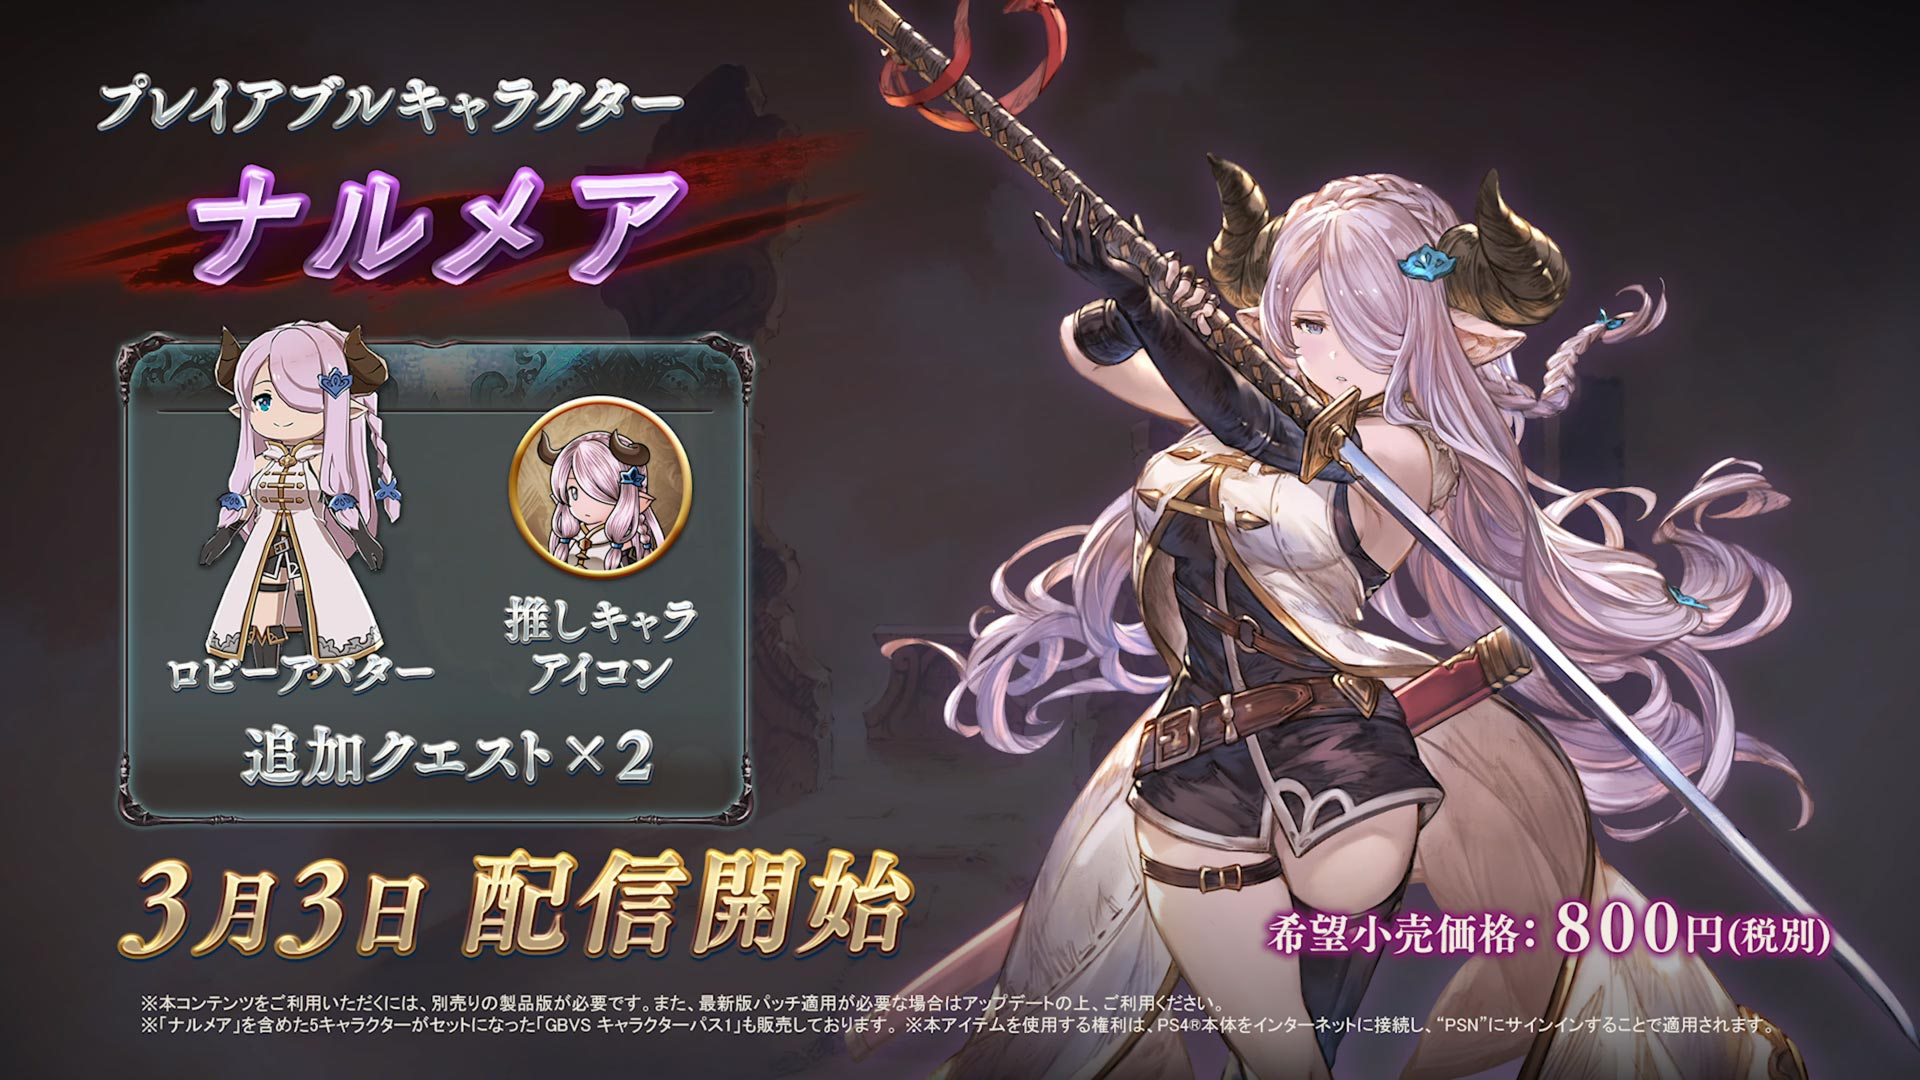 Granblue Fantasy Versus Narmaya Trailer Gallery 11 out of 12 image gallery